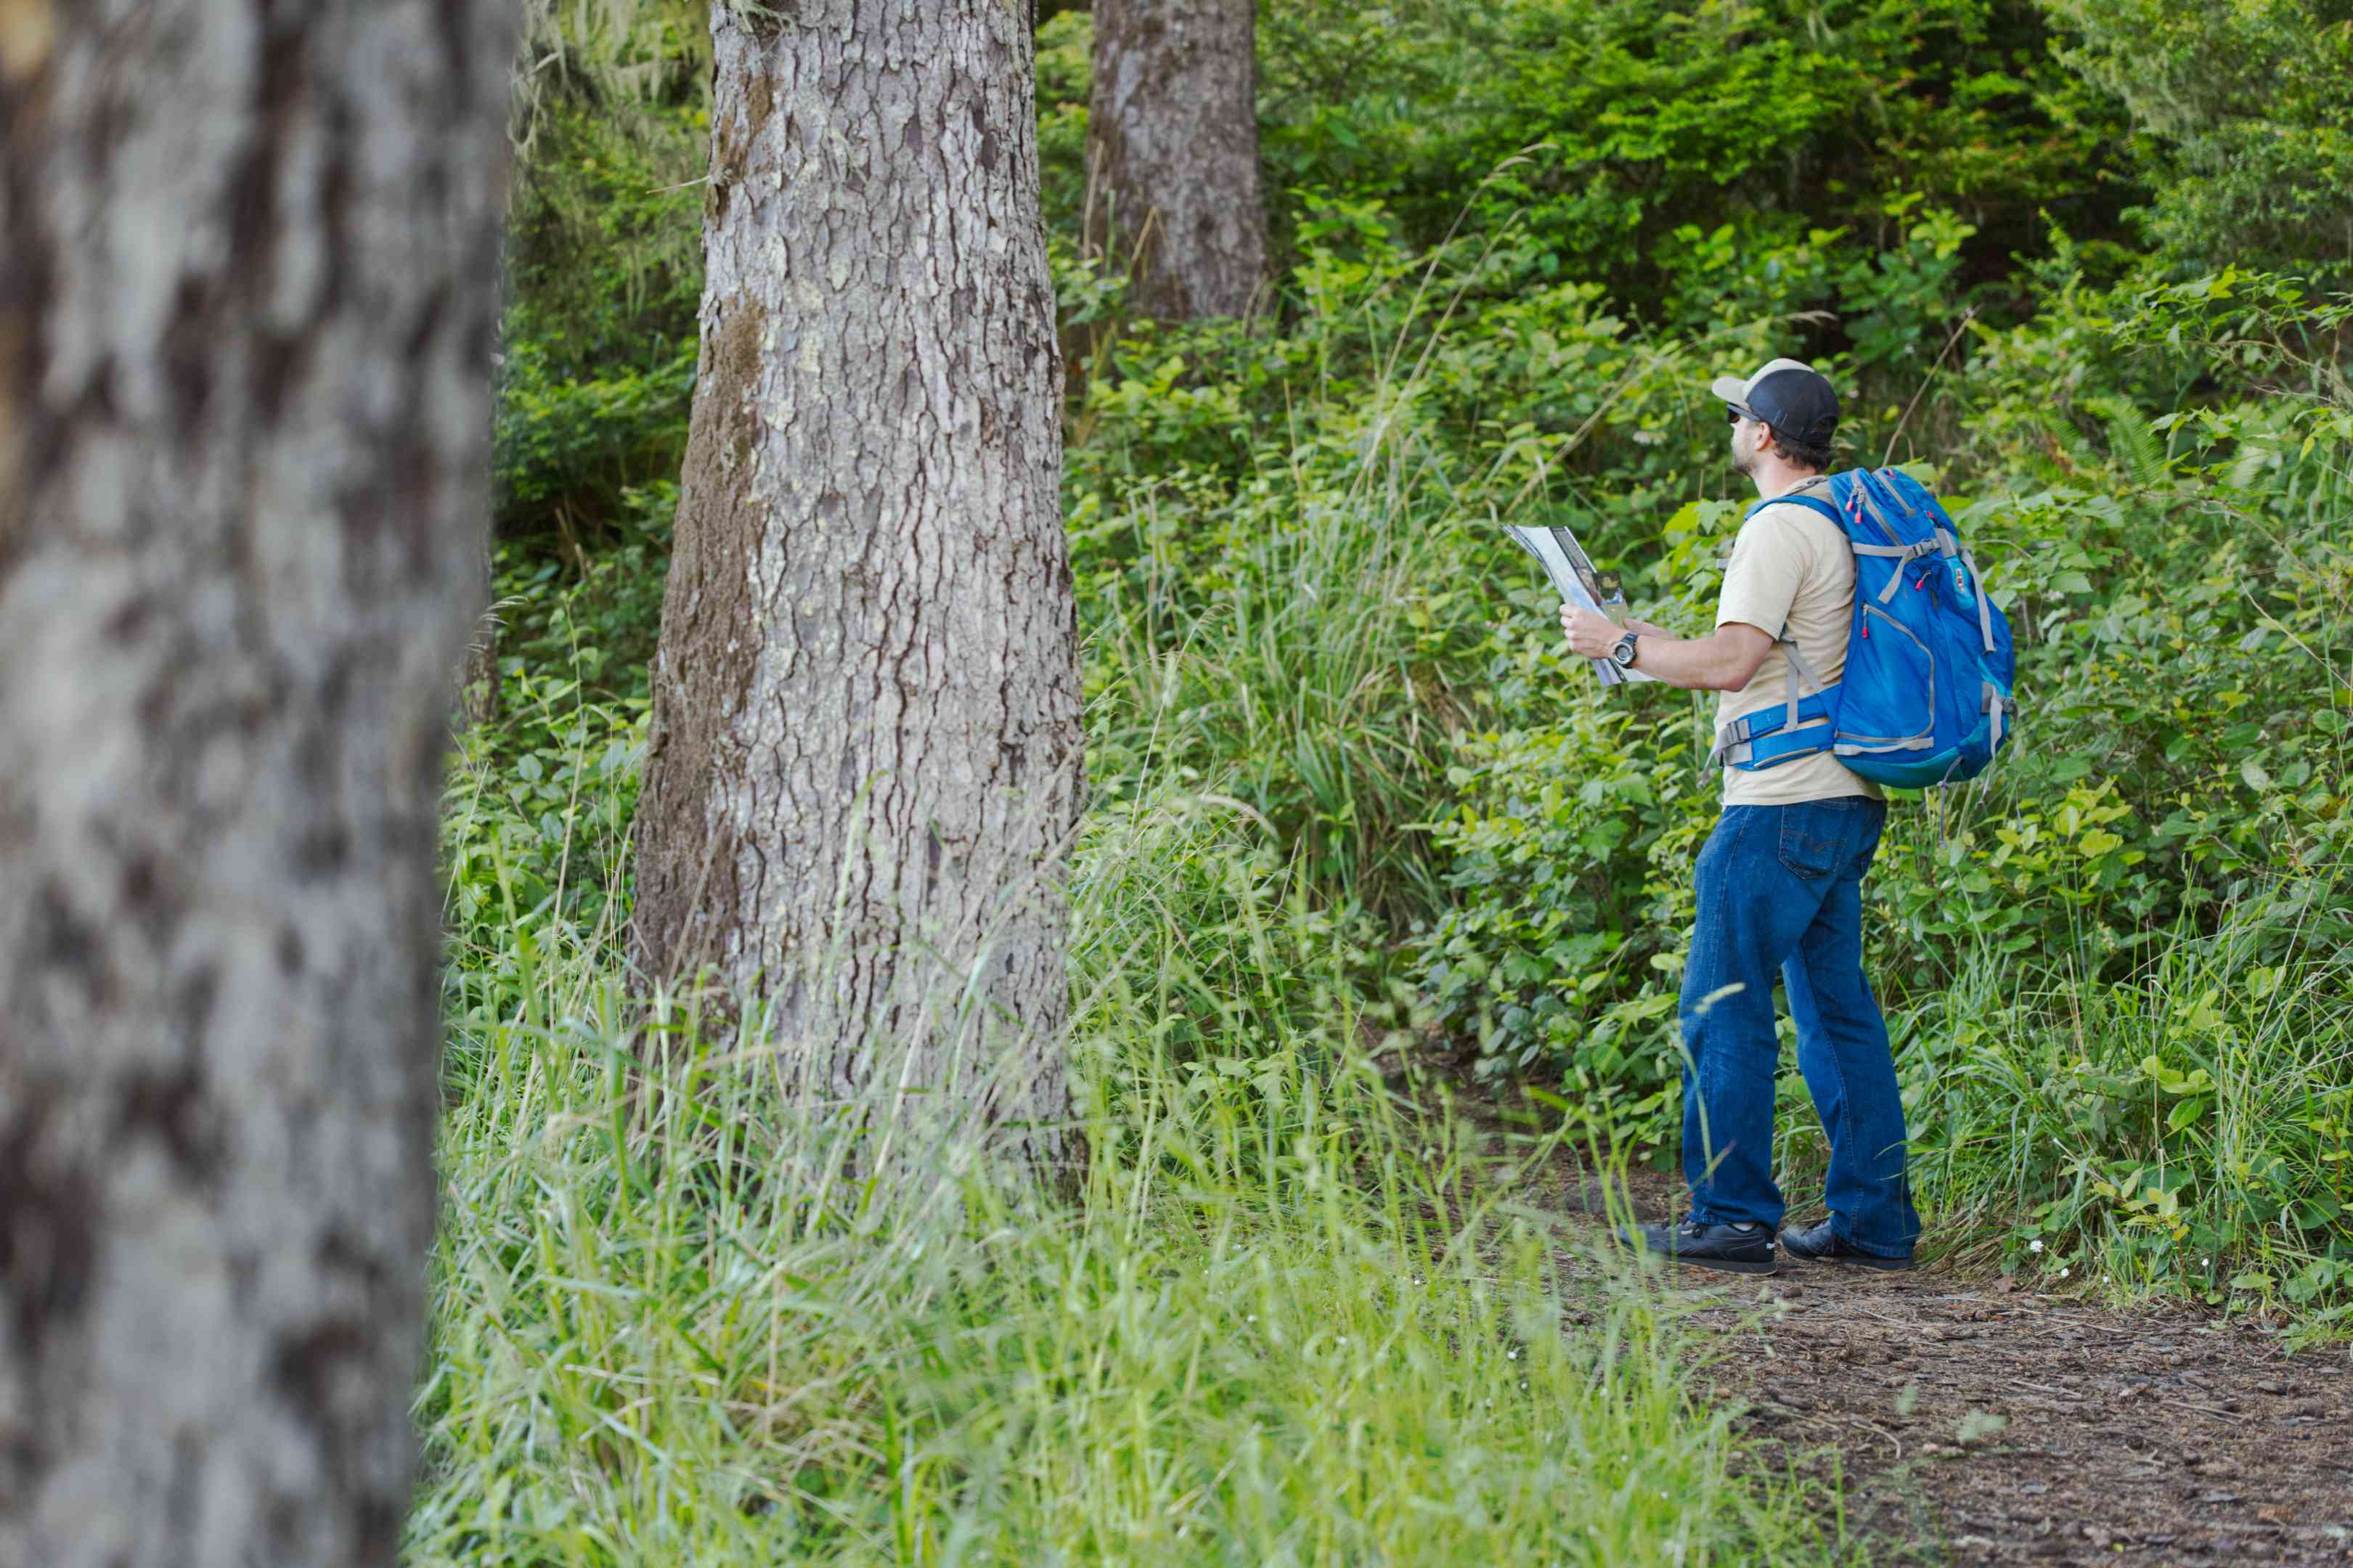 guy hiking with blue backpack and map on a dirt trail in deep forst